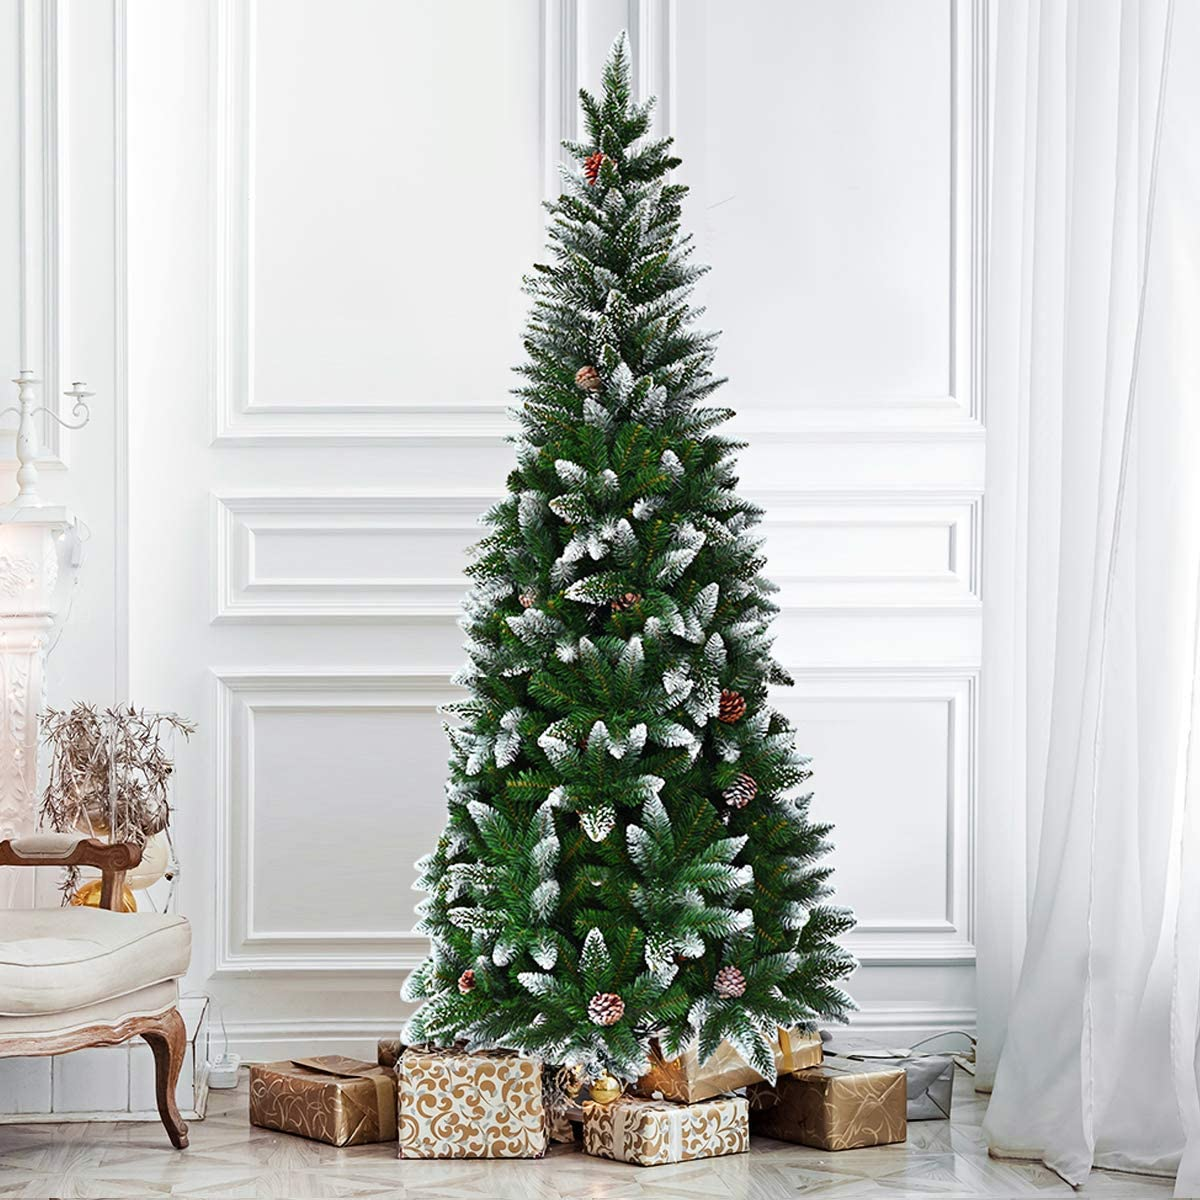 SPSUPE Artificial Max 72% OFF Pencil Christmas Snow Metal Flocked Tree Same day shipping with